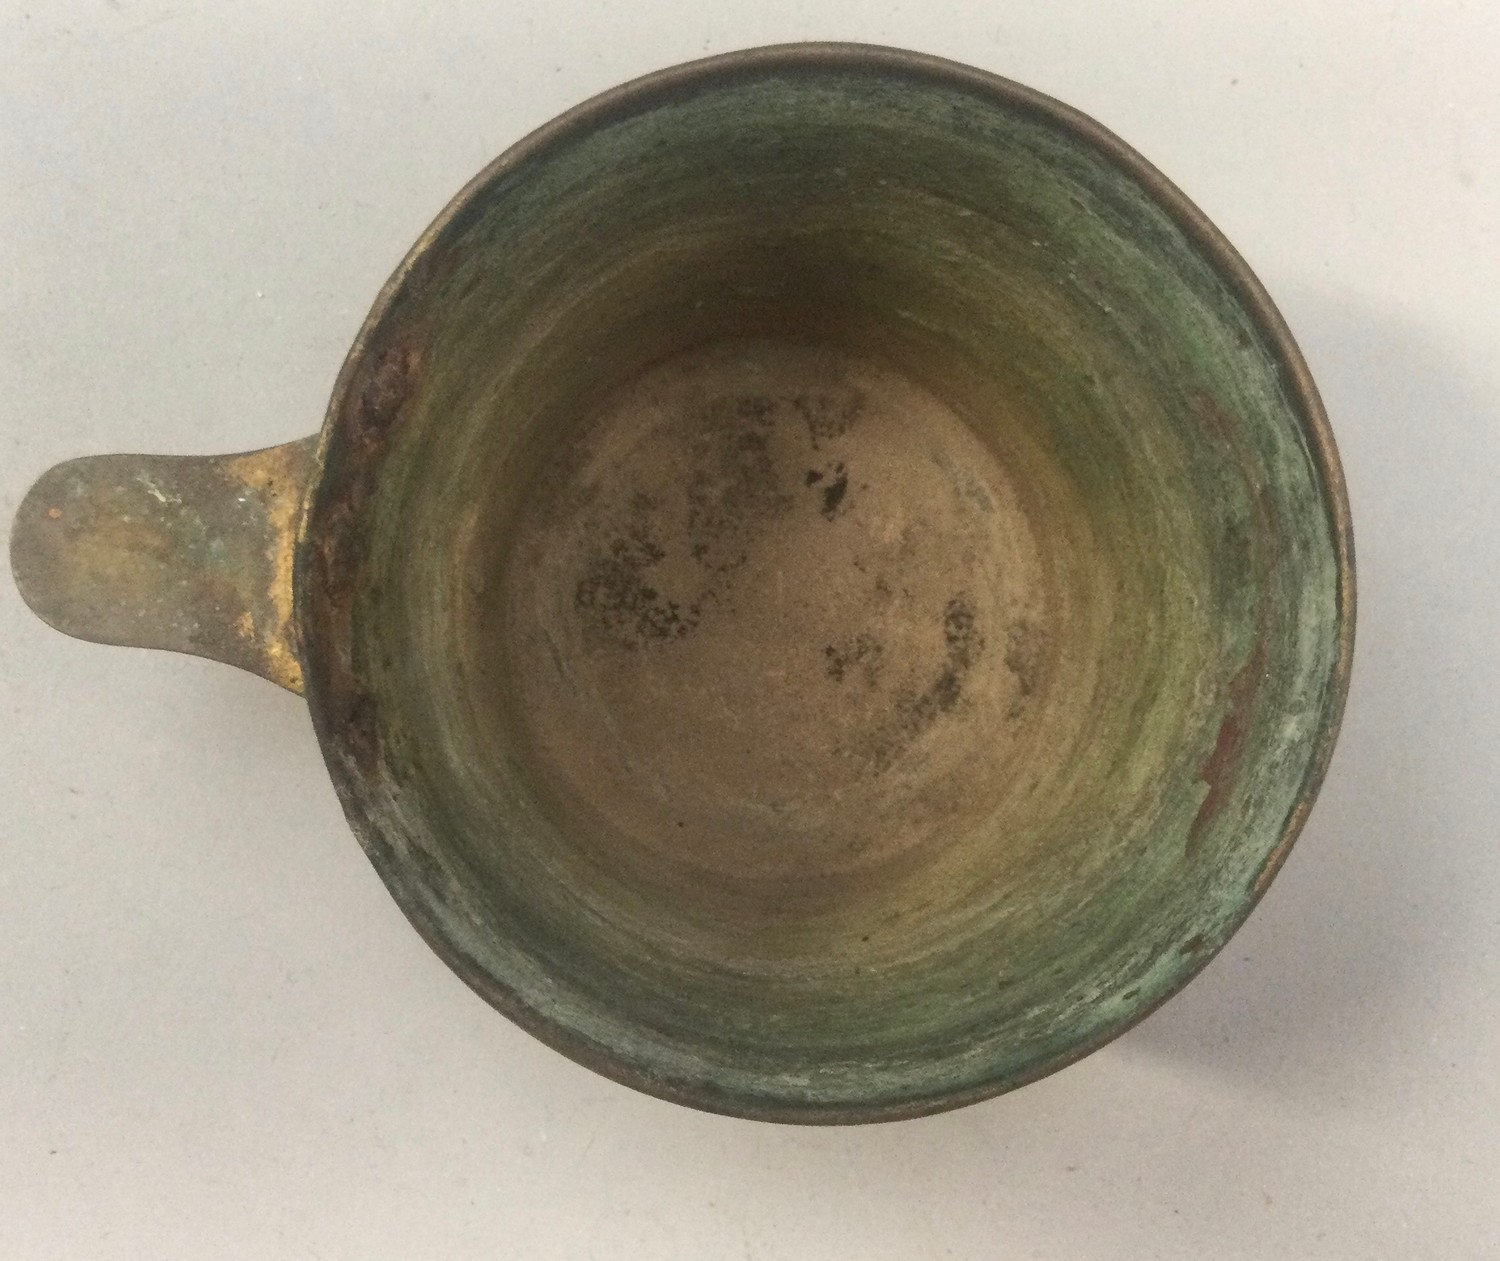 An Arts & Crafts brass Vapheio cup decorated with embossed figures. - Image 2 of 4